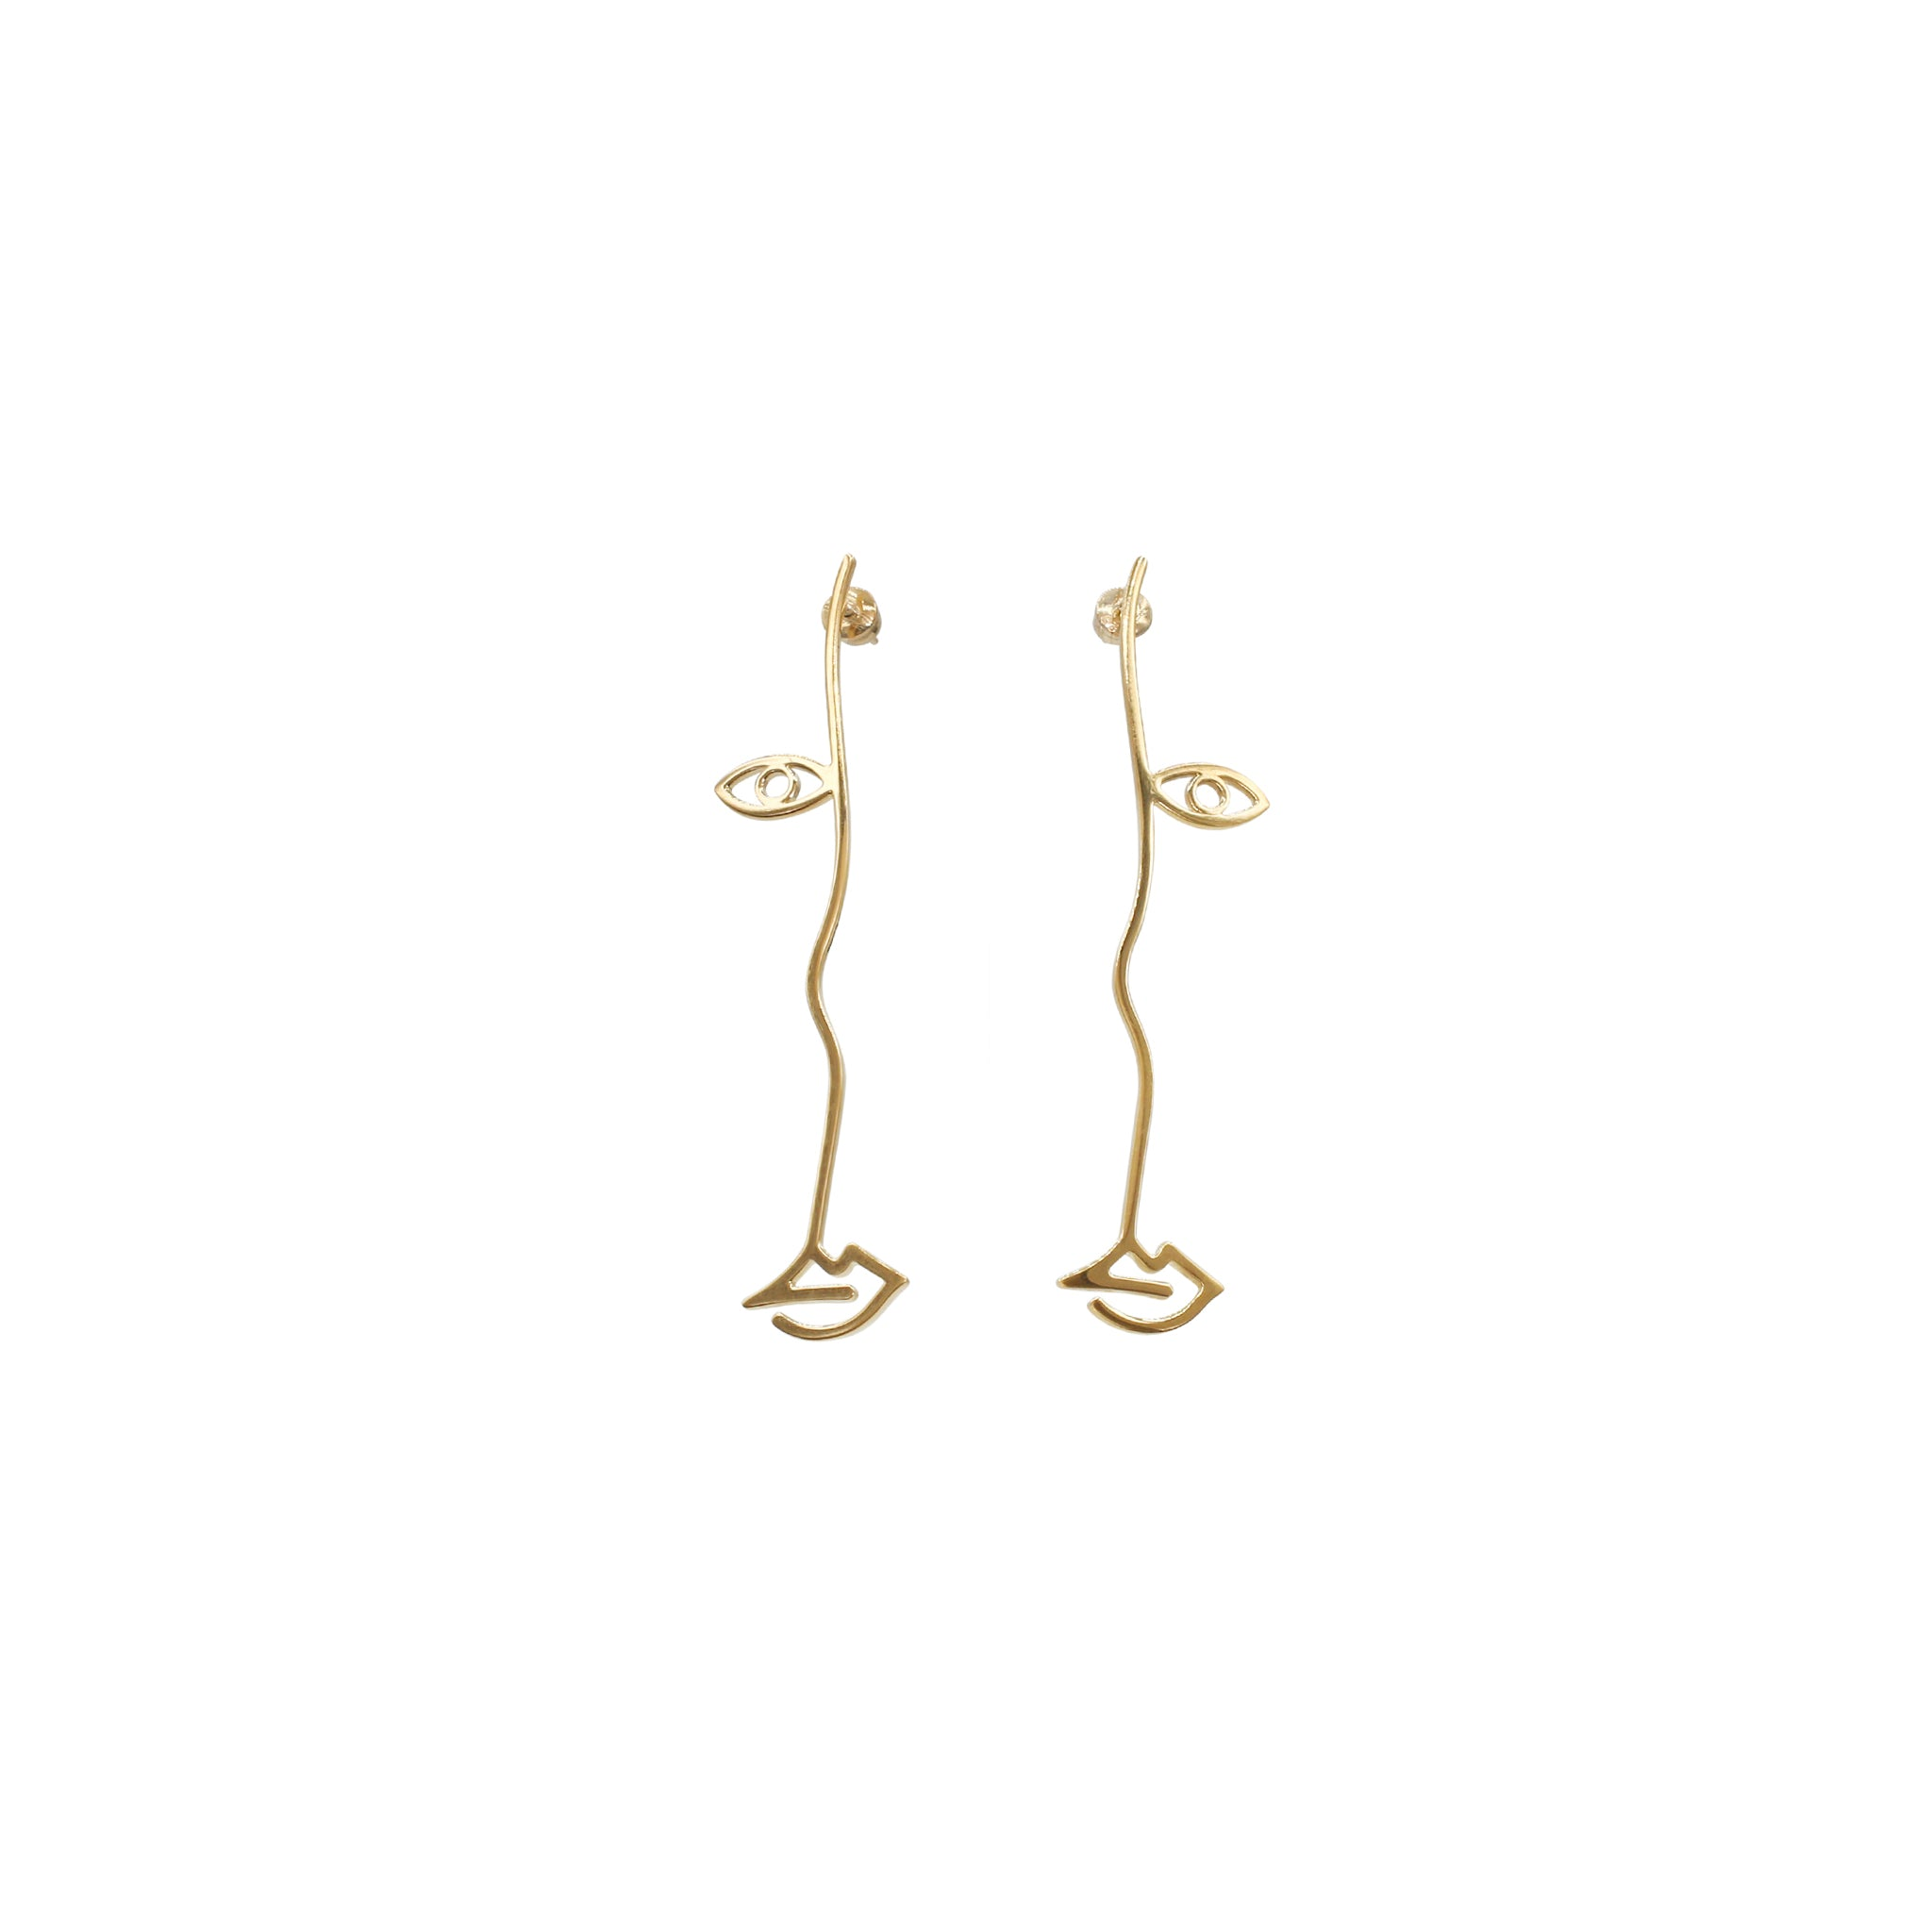 Mara Paris Surreal Earrings Vermeil